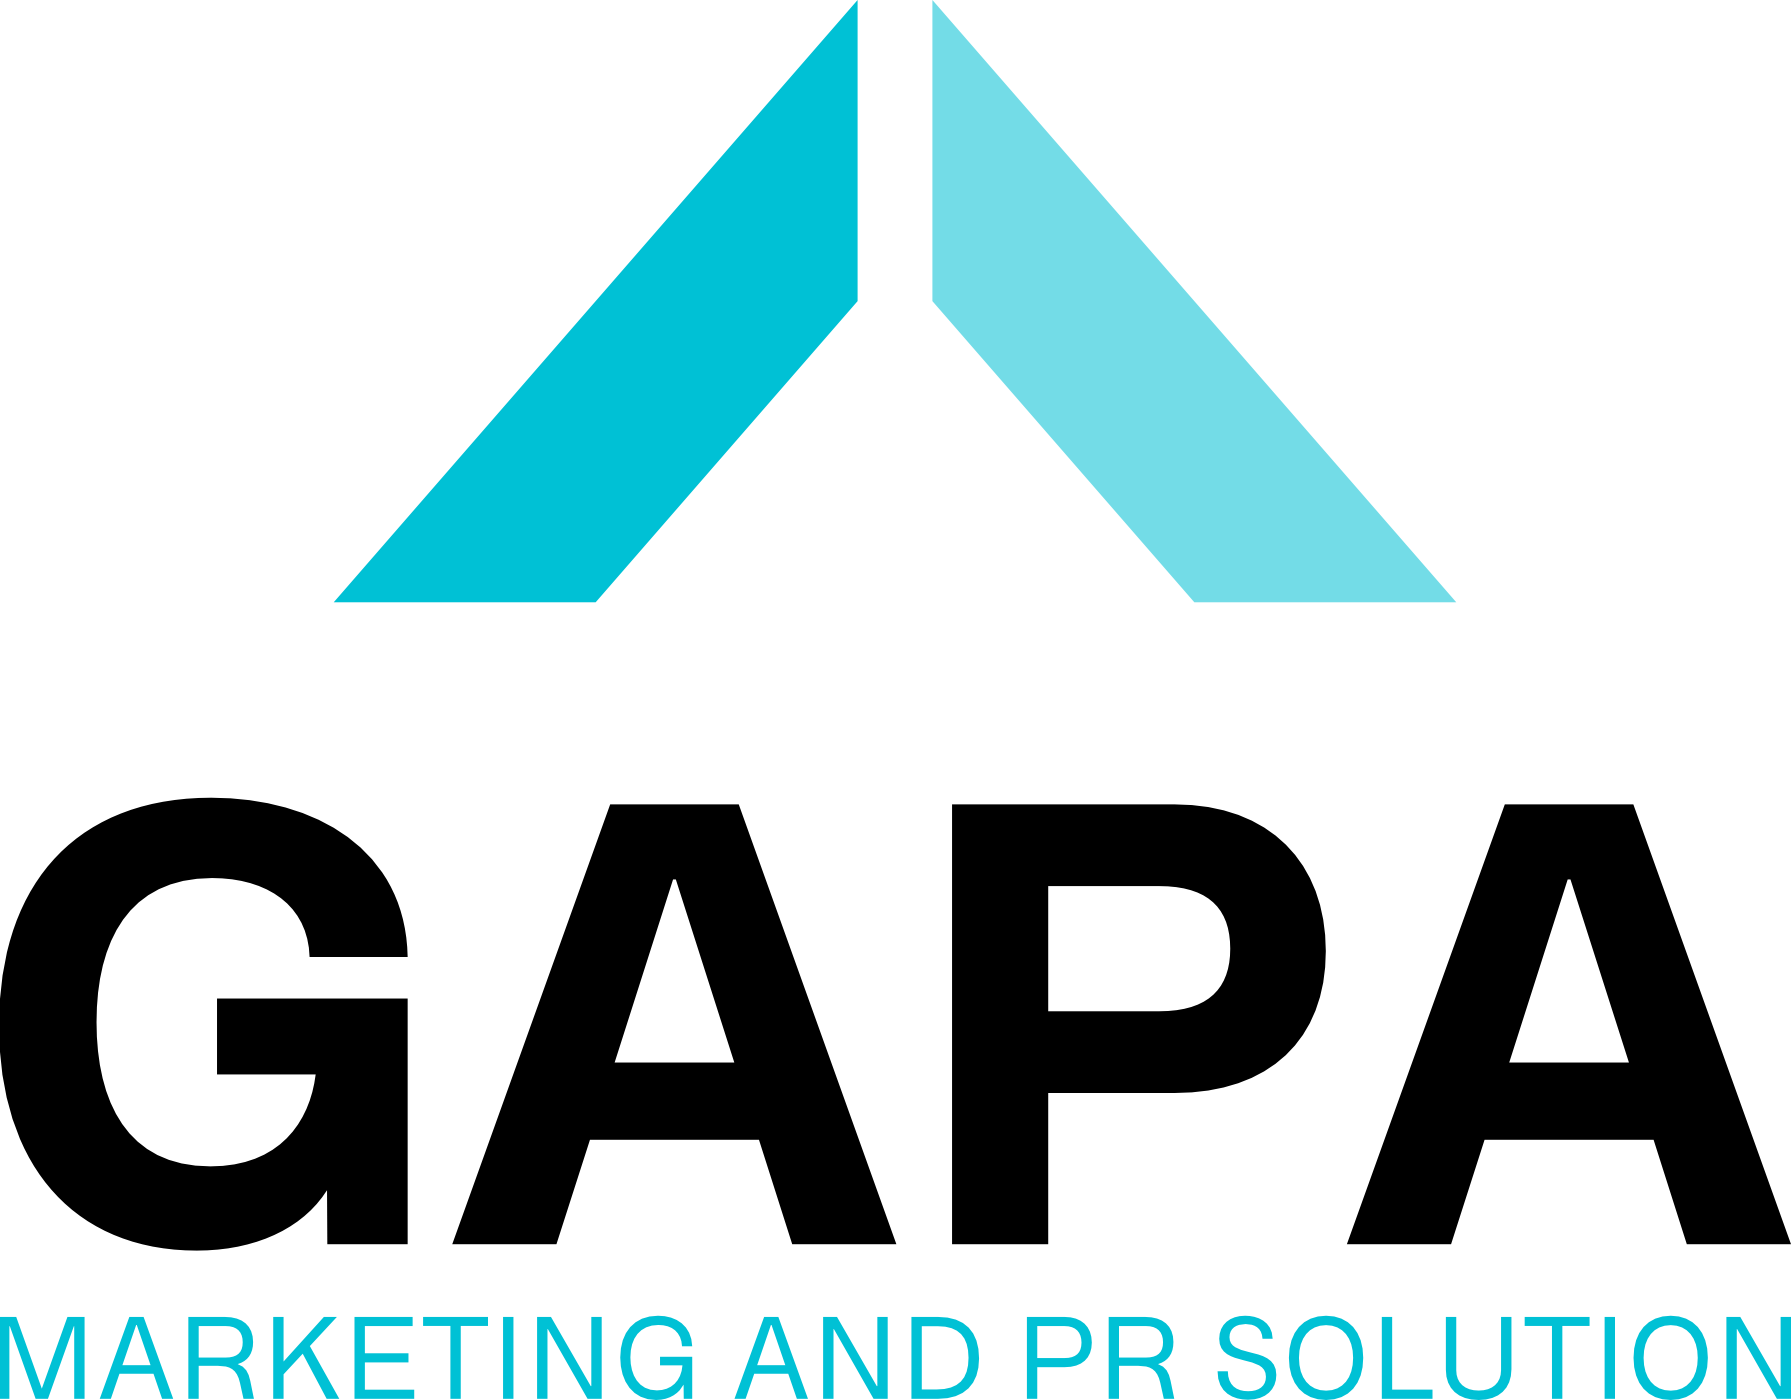 GAPA Marketing and PR